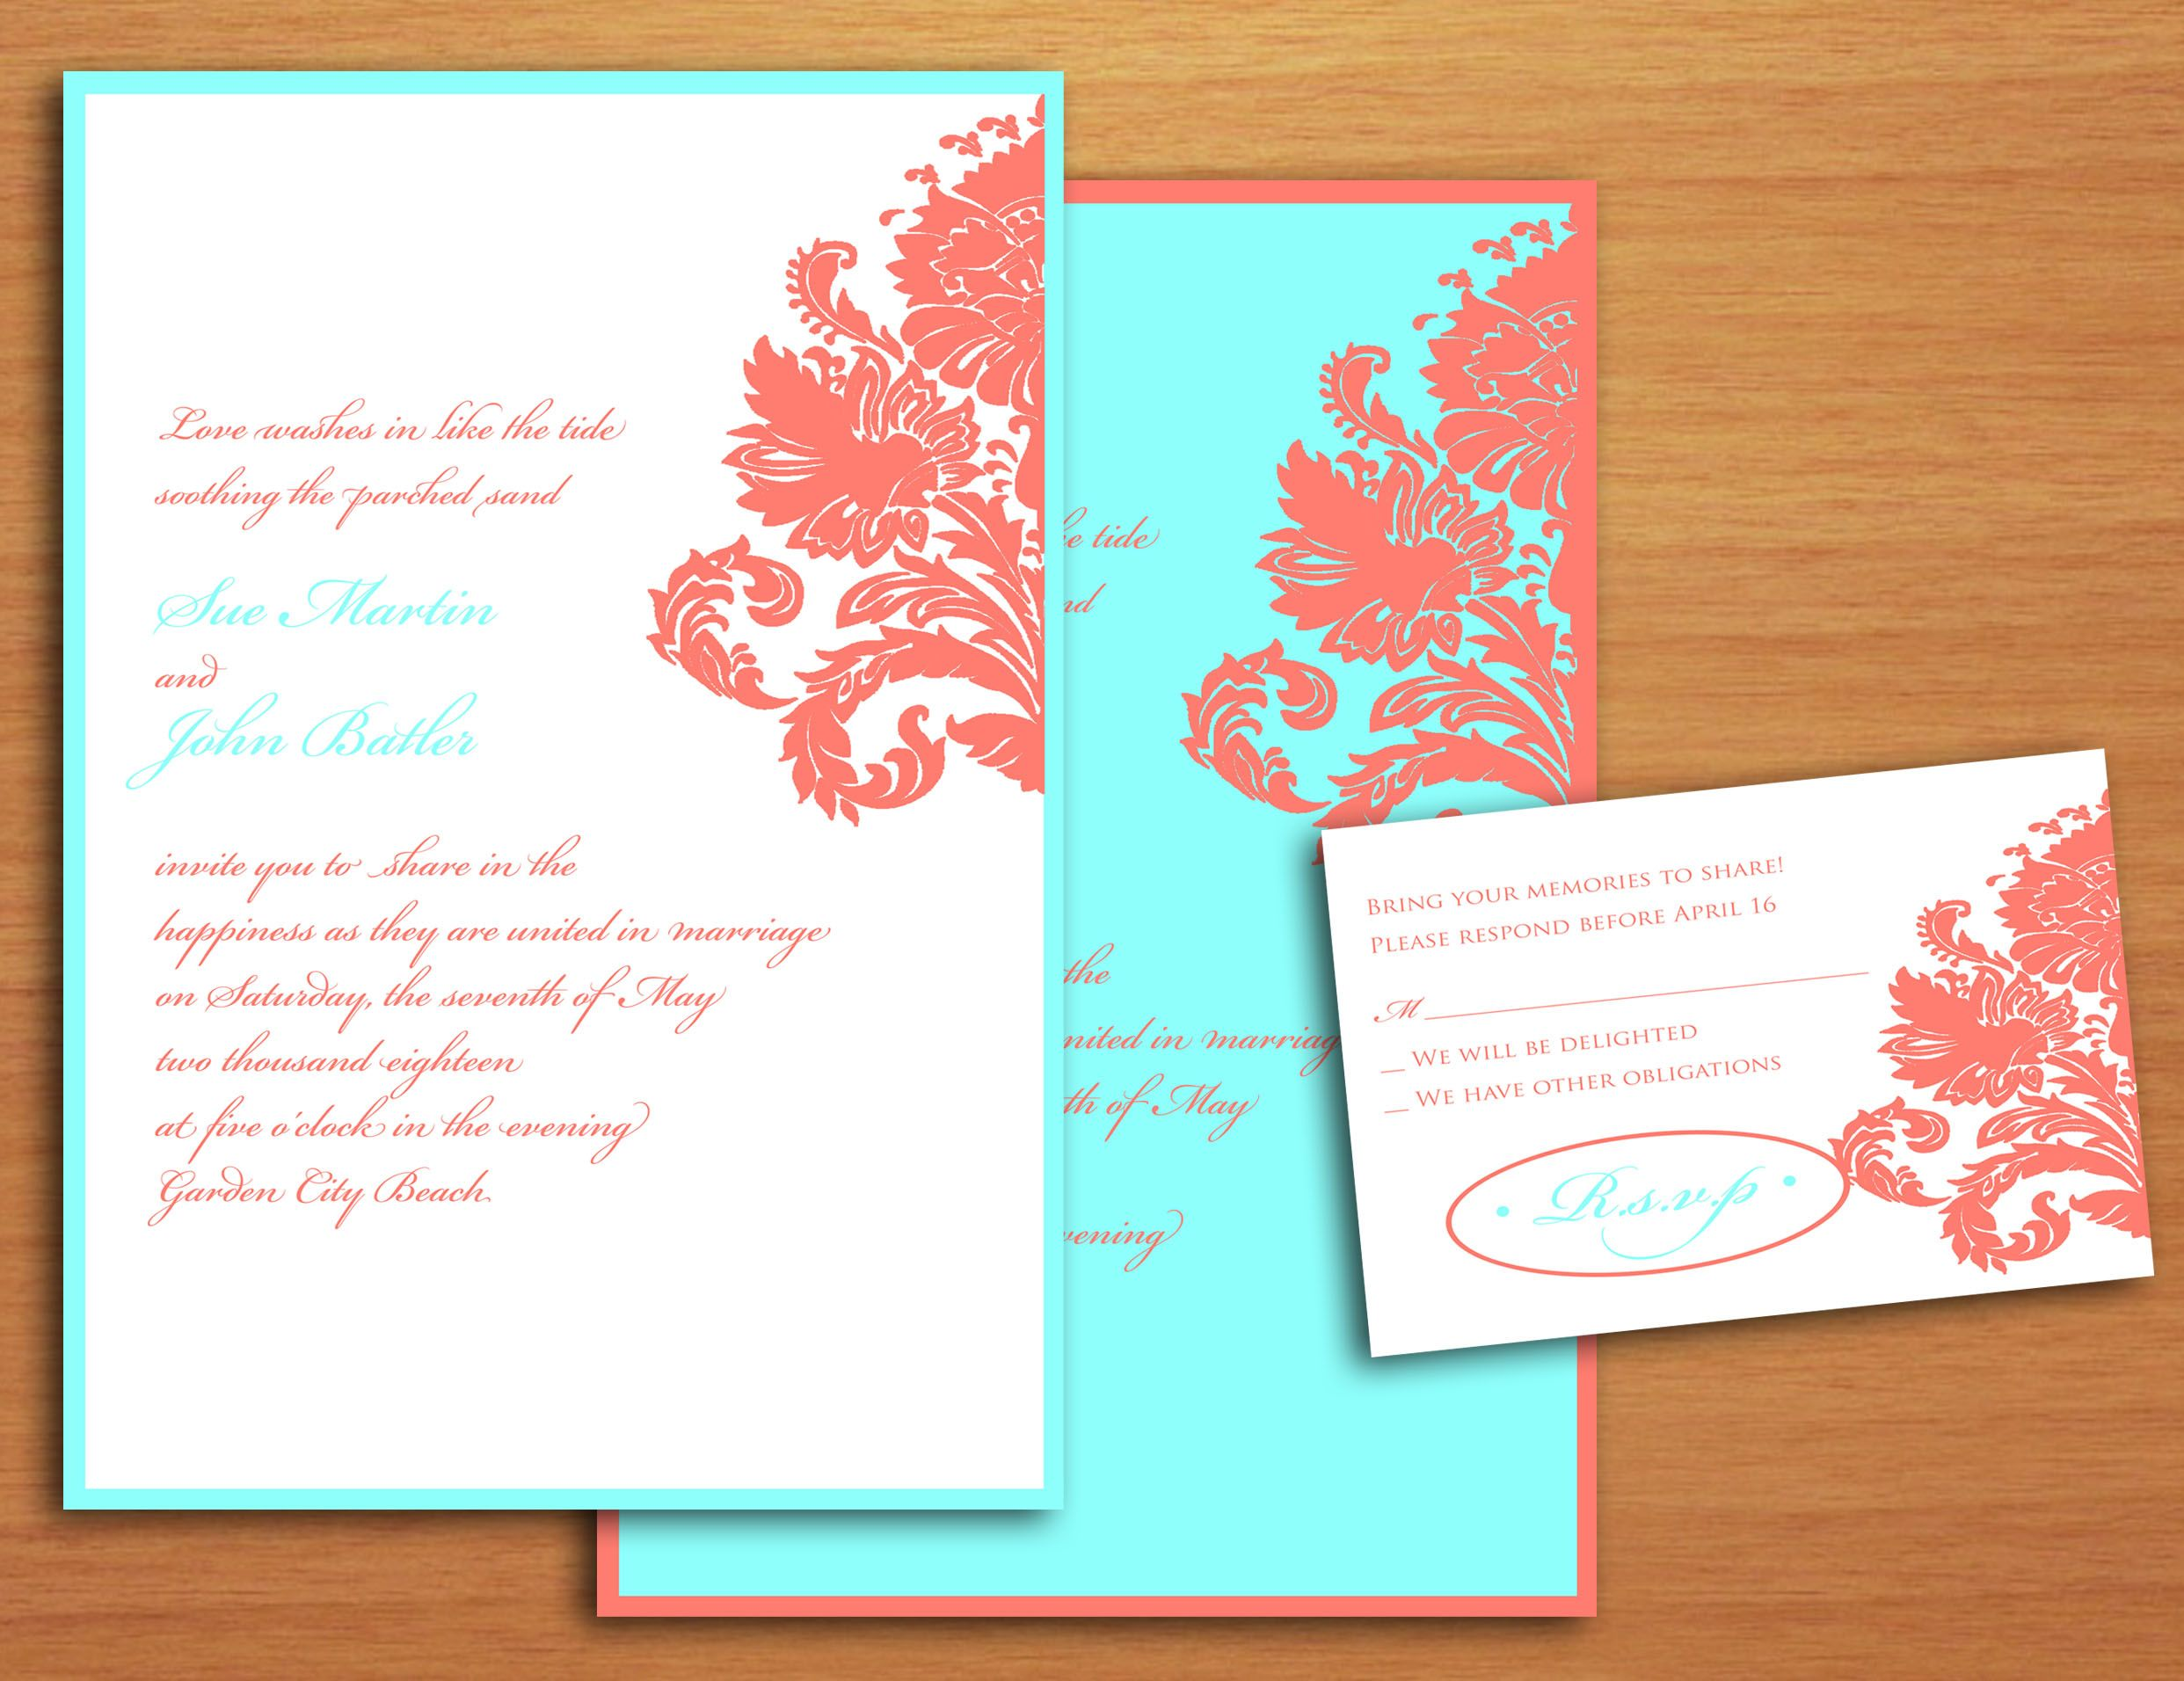 Blue And Coral Wedding Invitations: Use A Darker Blue Like A Navy Instead Of The Turquoise Or